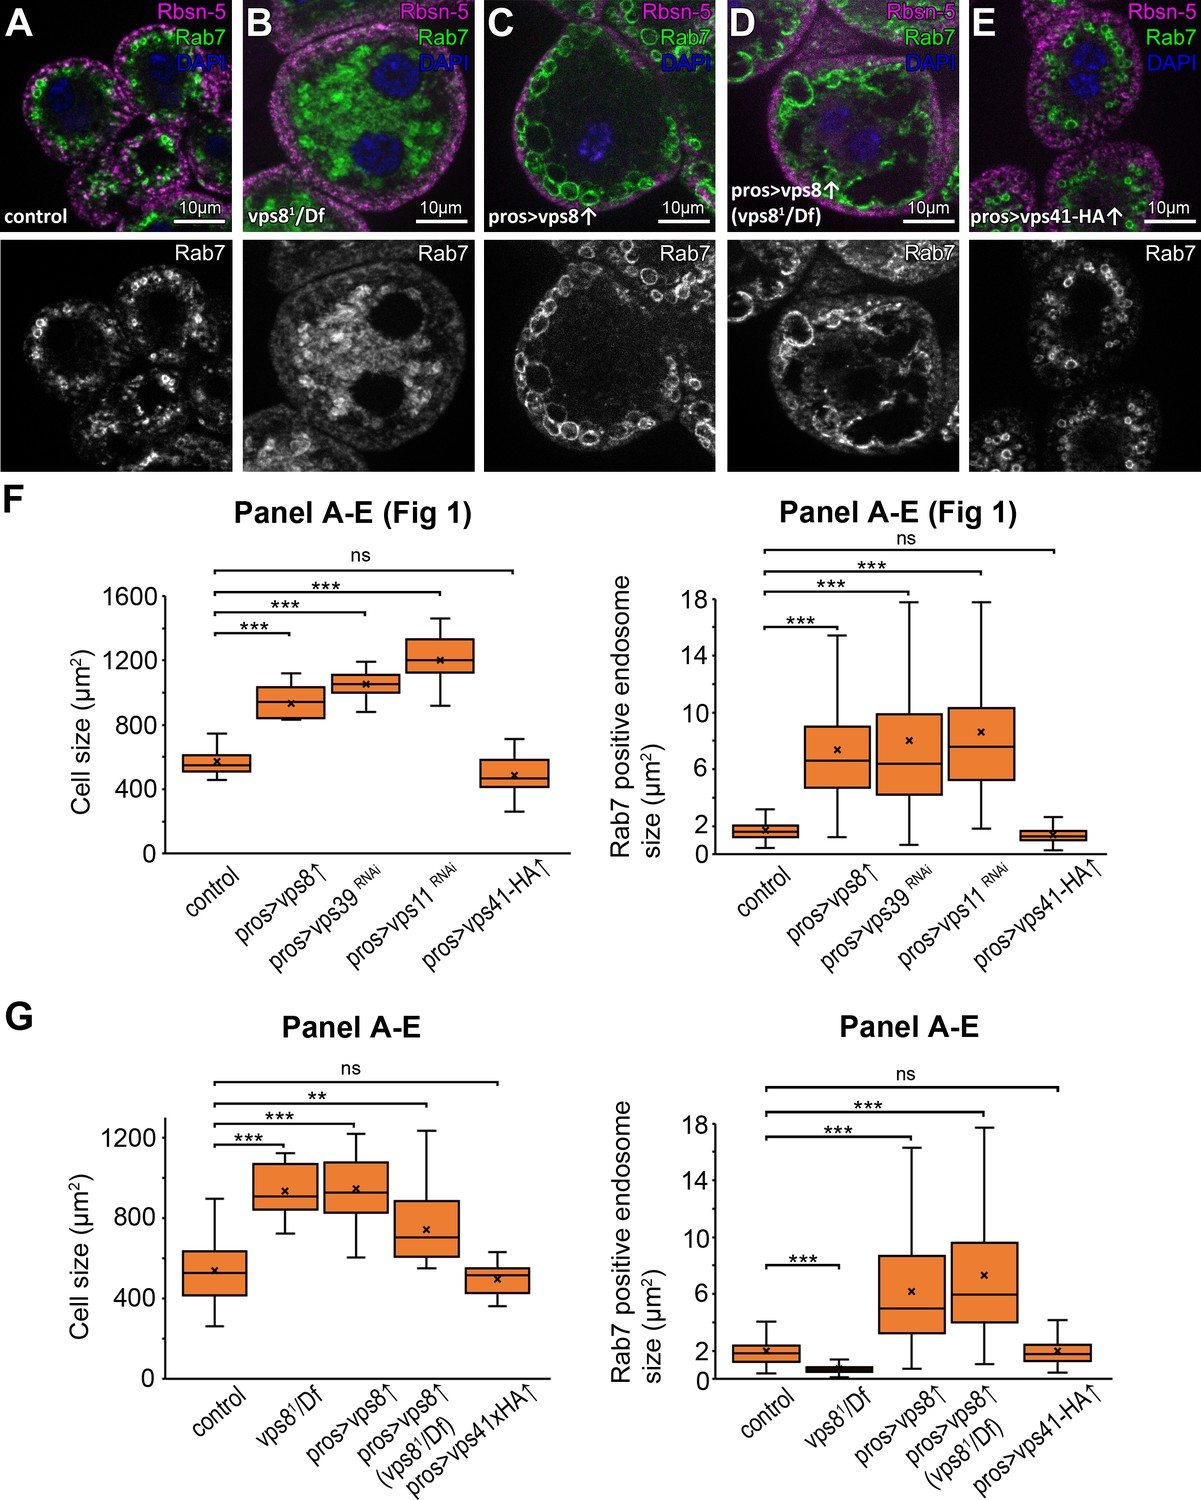 Vps8 overexpression inhibits HOPS-dependent trafficking routes by